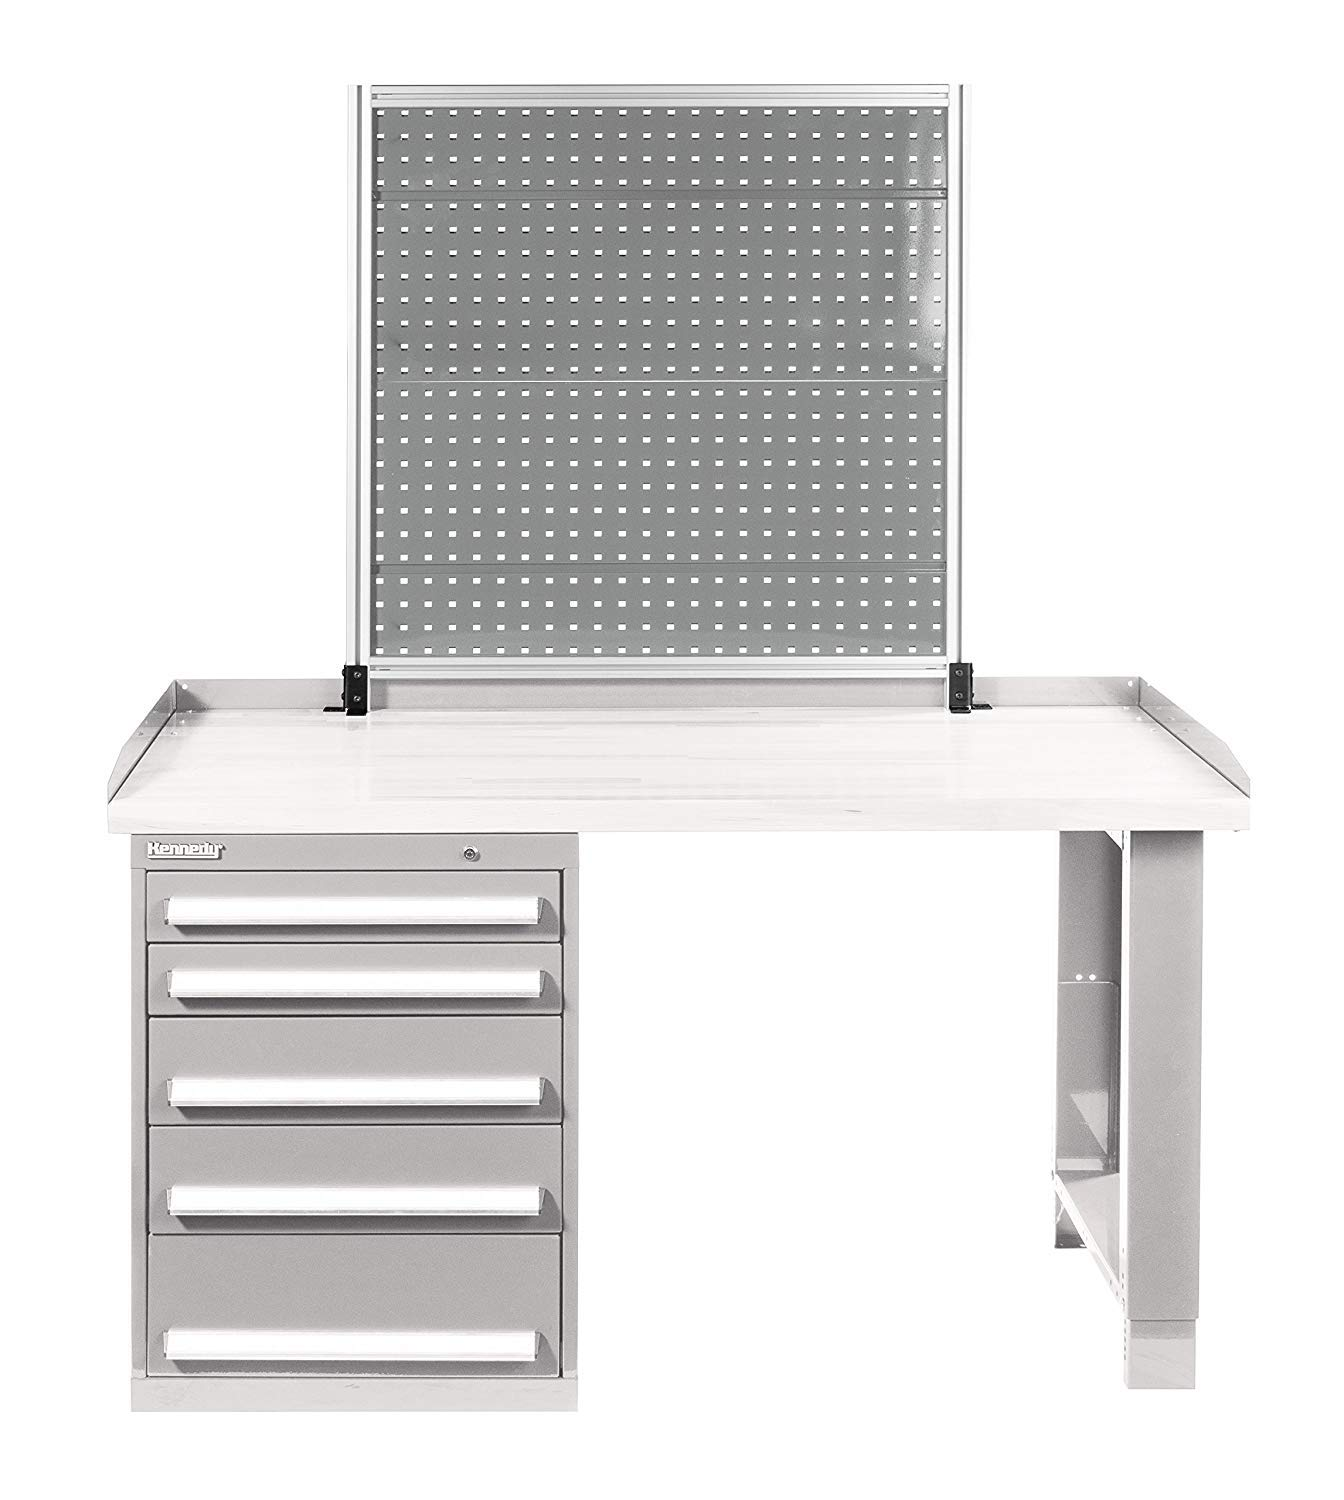 Kennedy Manufacturing 50070UGY Kennedy Gray Bench-Mount Pegboard, 39'' x 1-1/2'' x 40'', 40'' Height, 39'' Wide, 1.5'' Length, Pounds